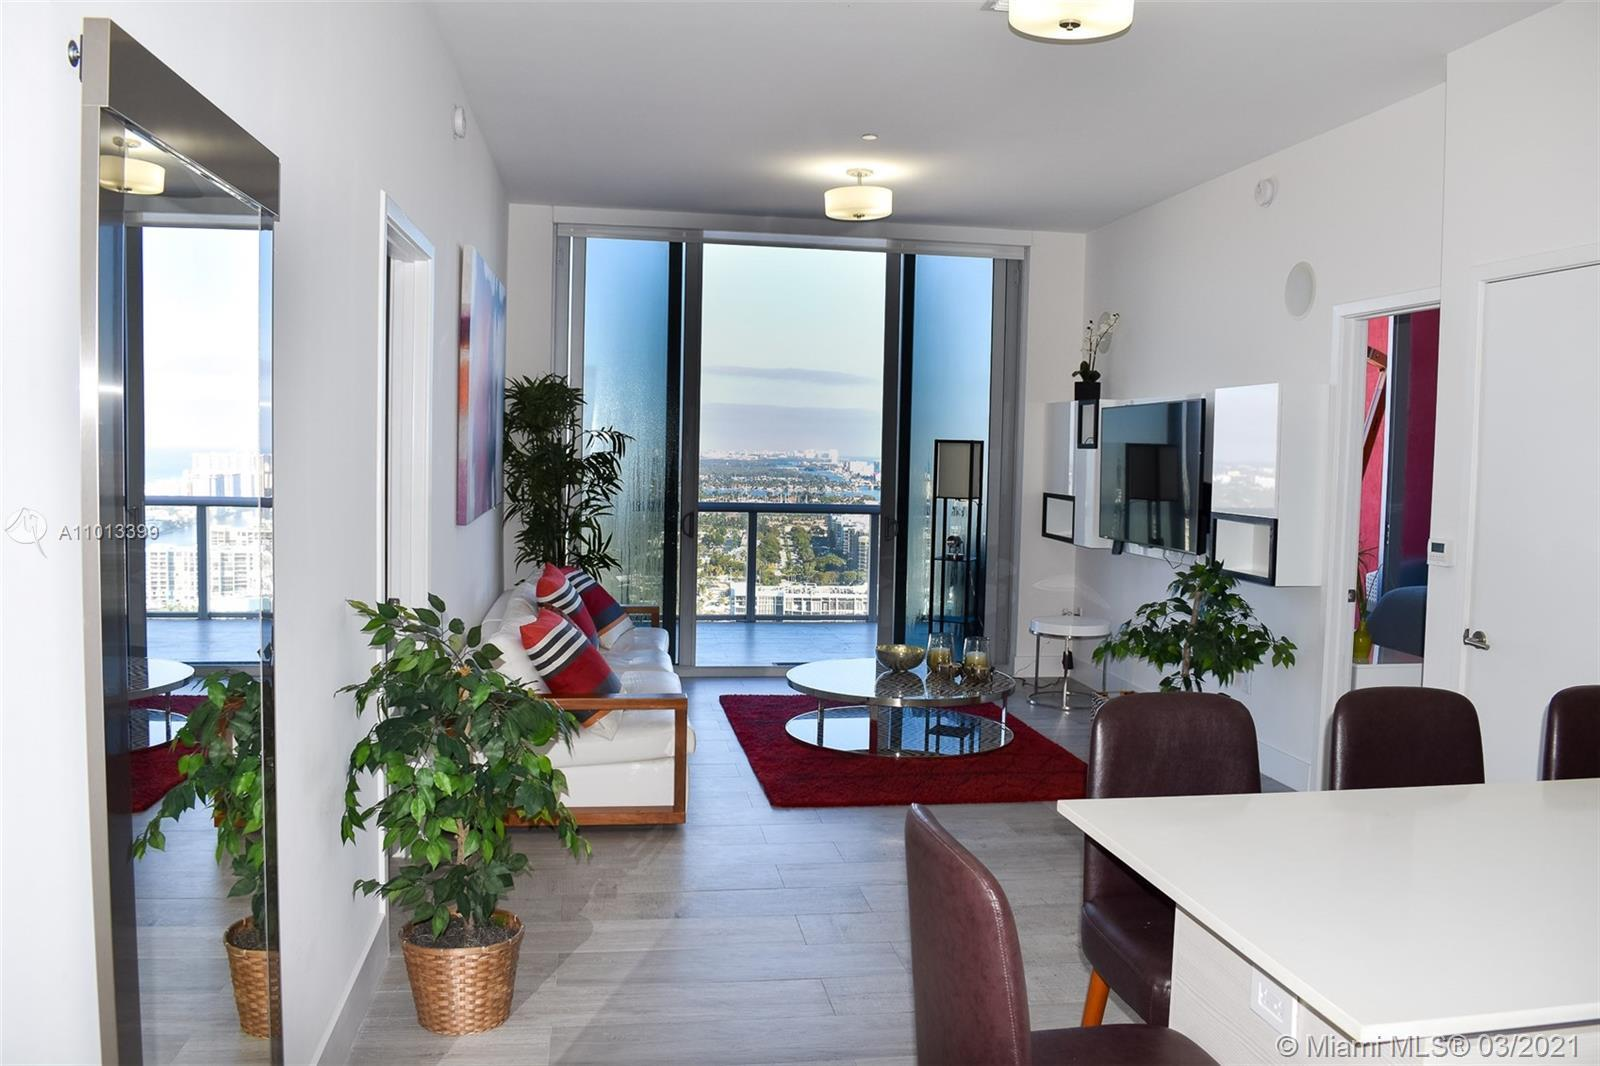 FANTASTIC OPPORTUNITY TO OWN A LUXURY PENTHOUSE WITH VAST OCEAN, INTRACOASTAL AND CITY VIEWS. UNIT H